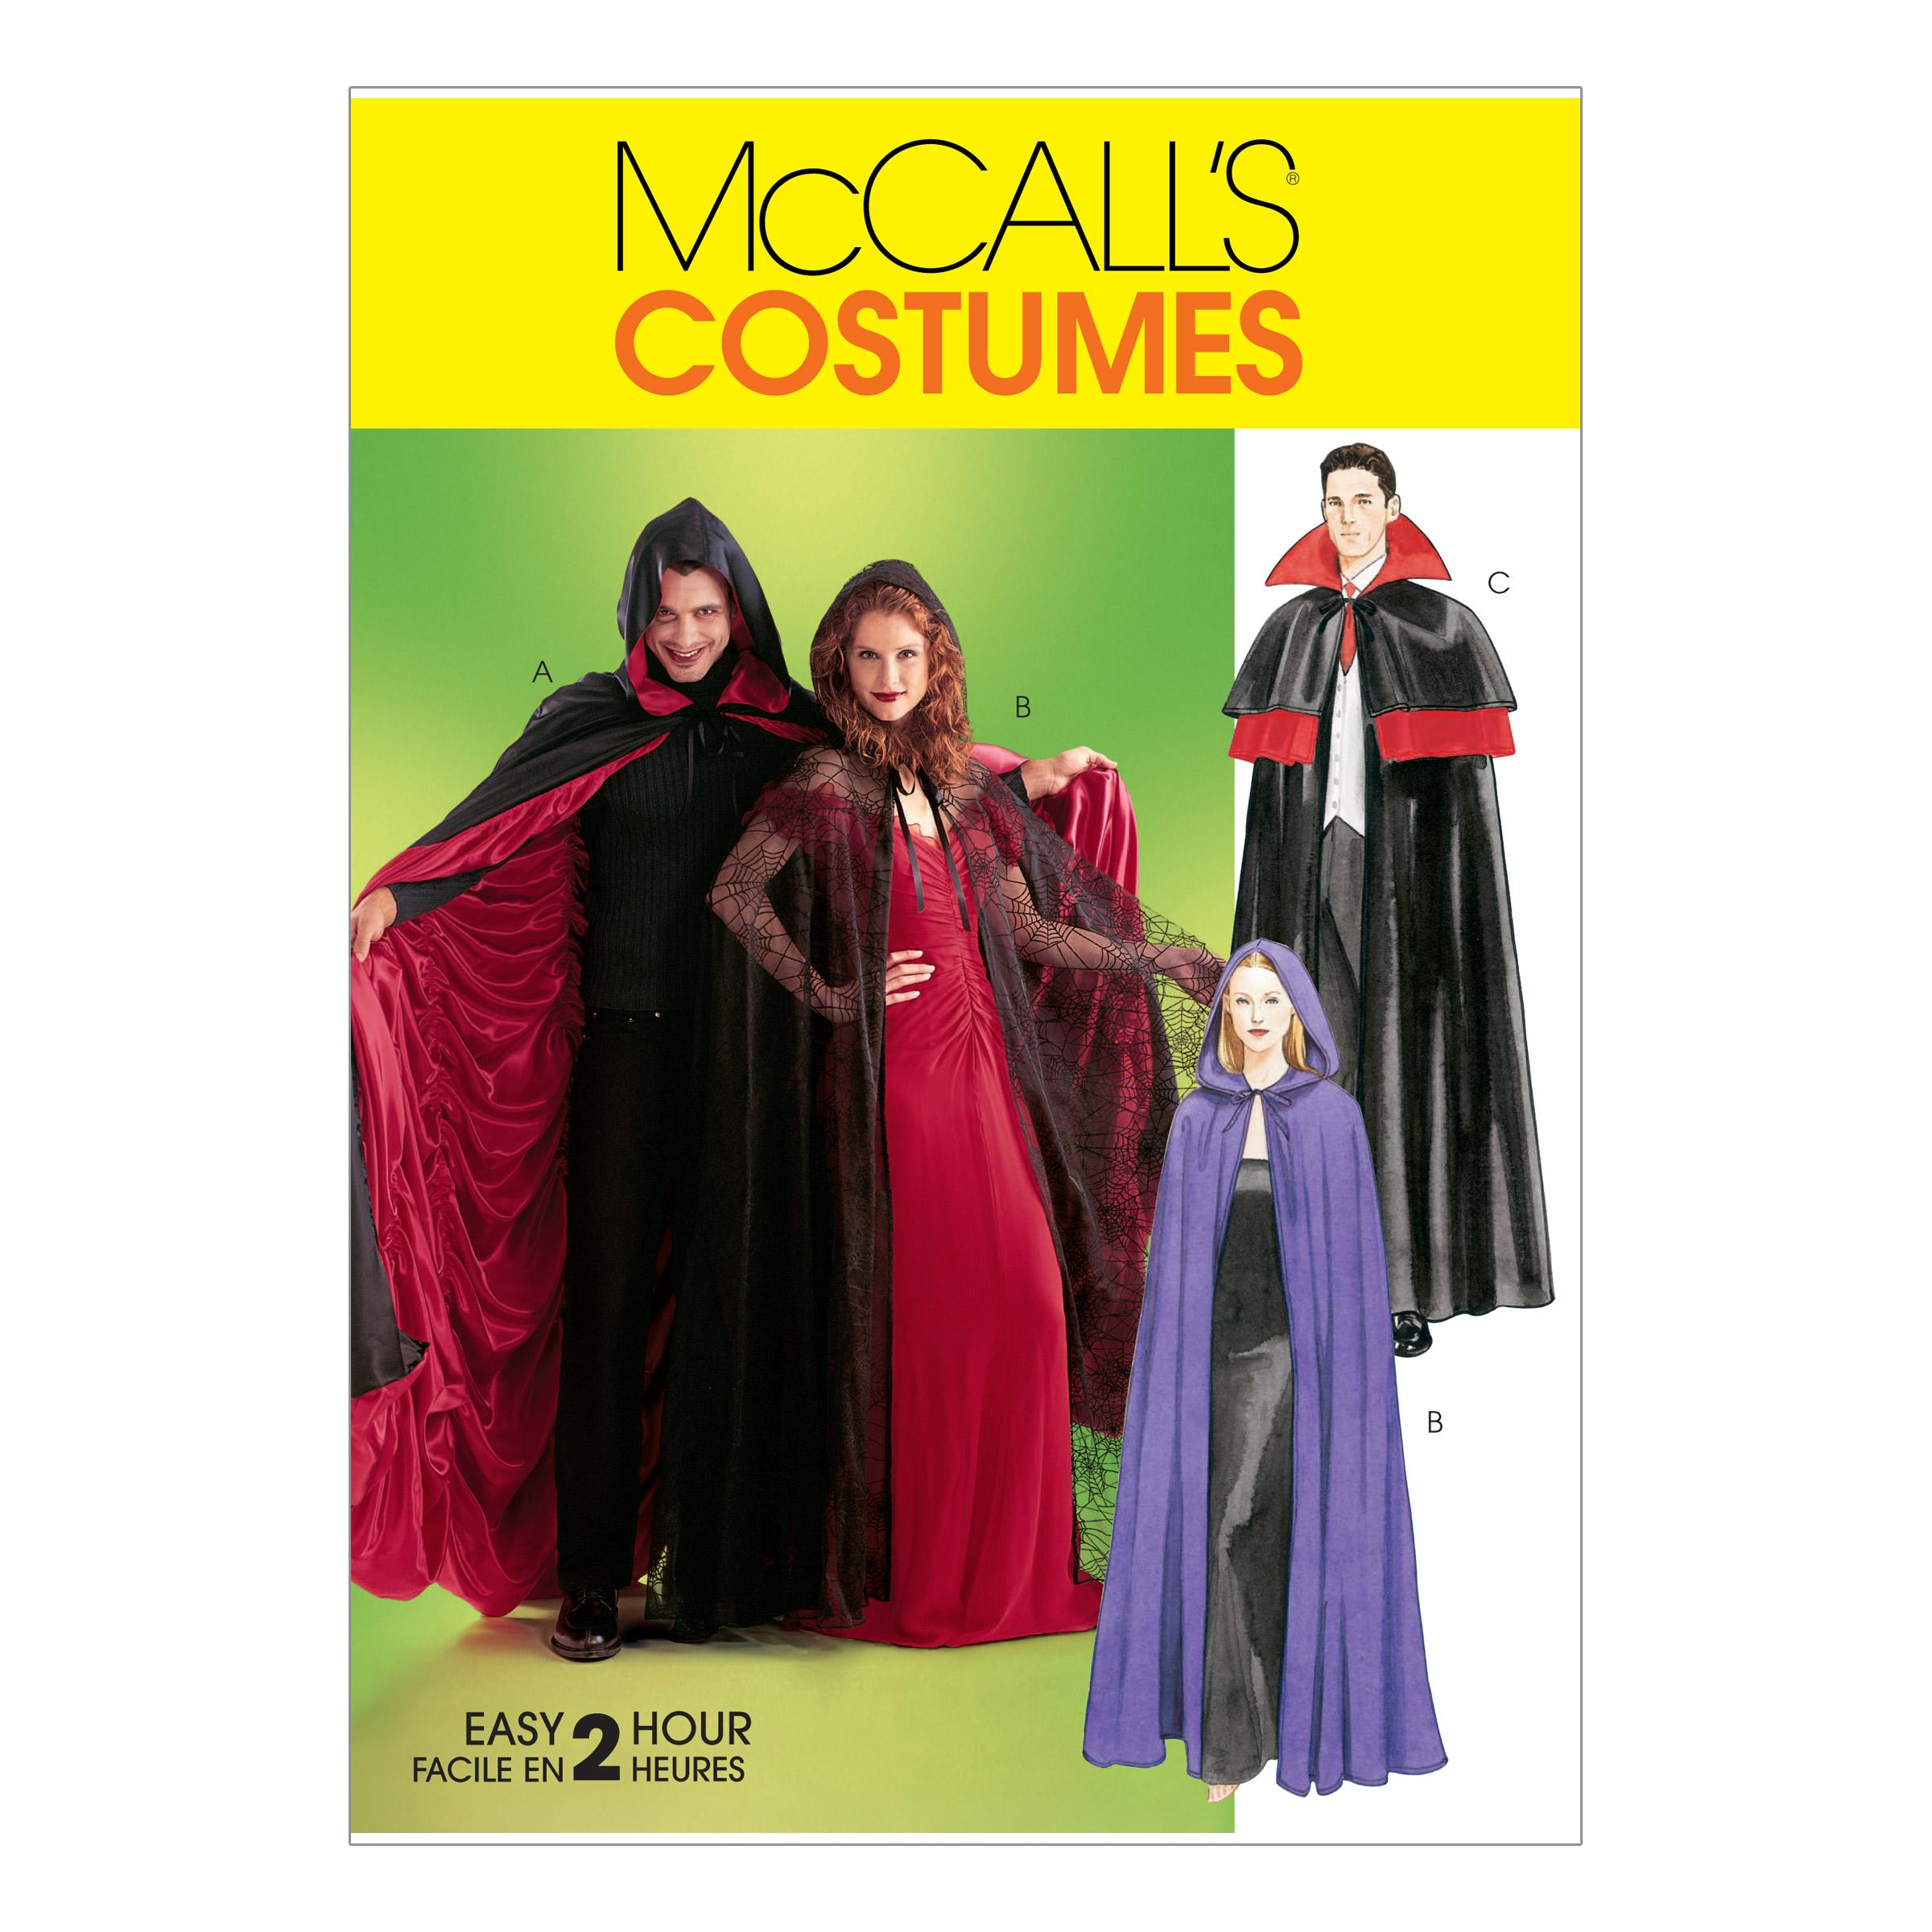 McCalls M4139 Costumes, Halloween